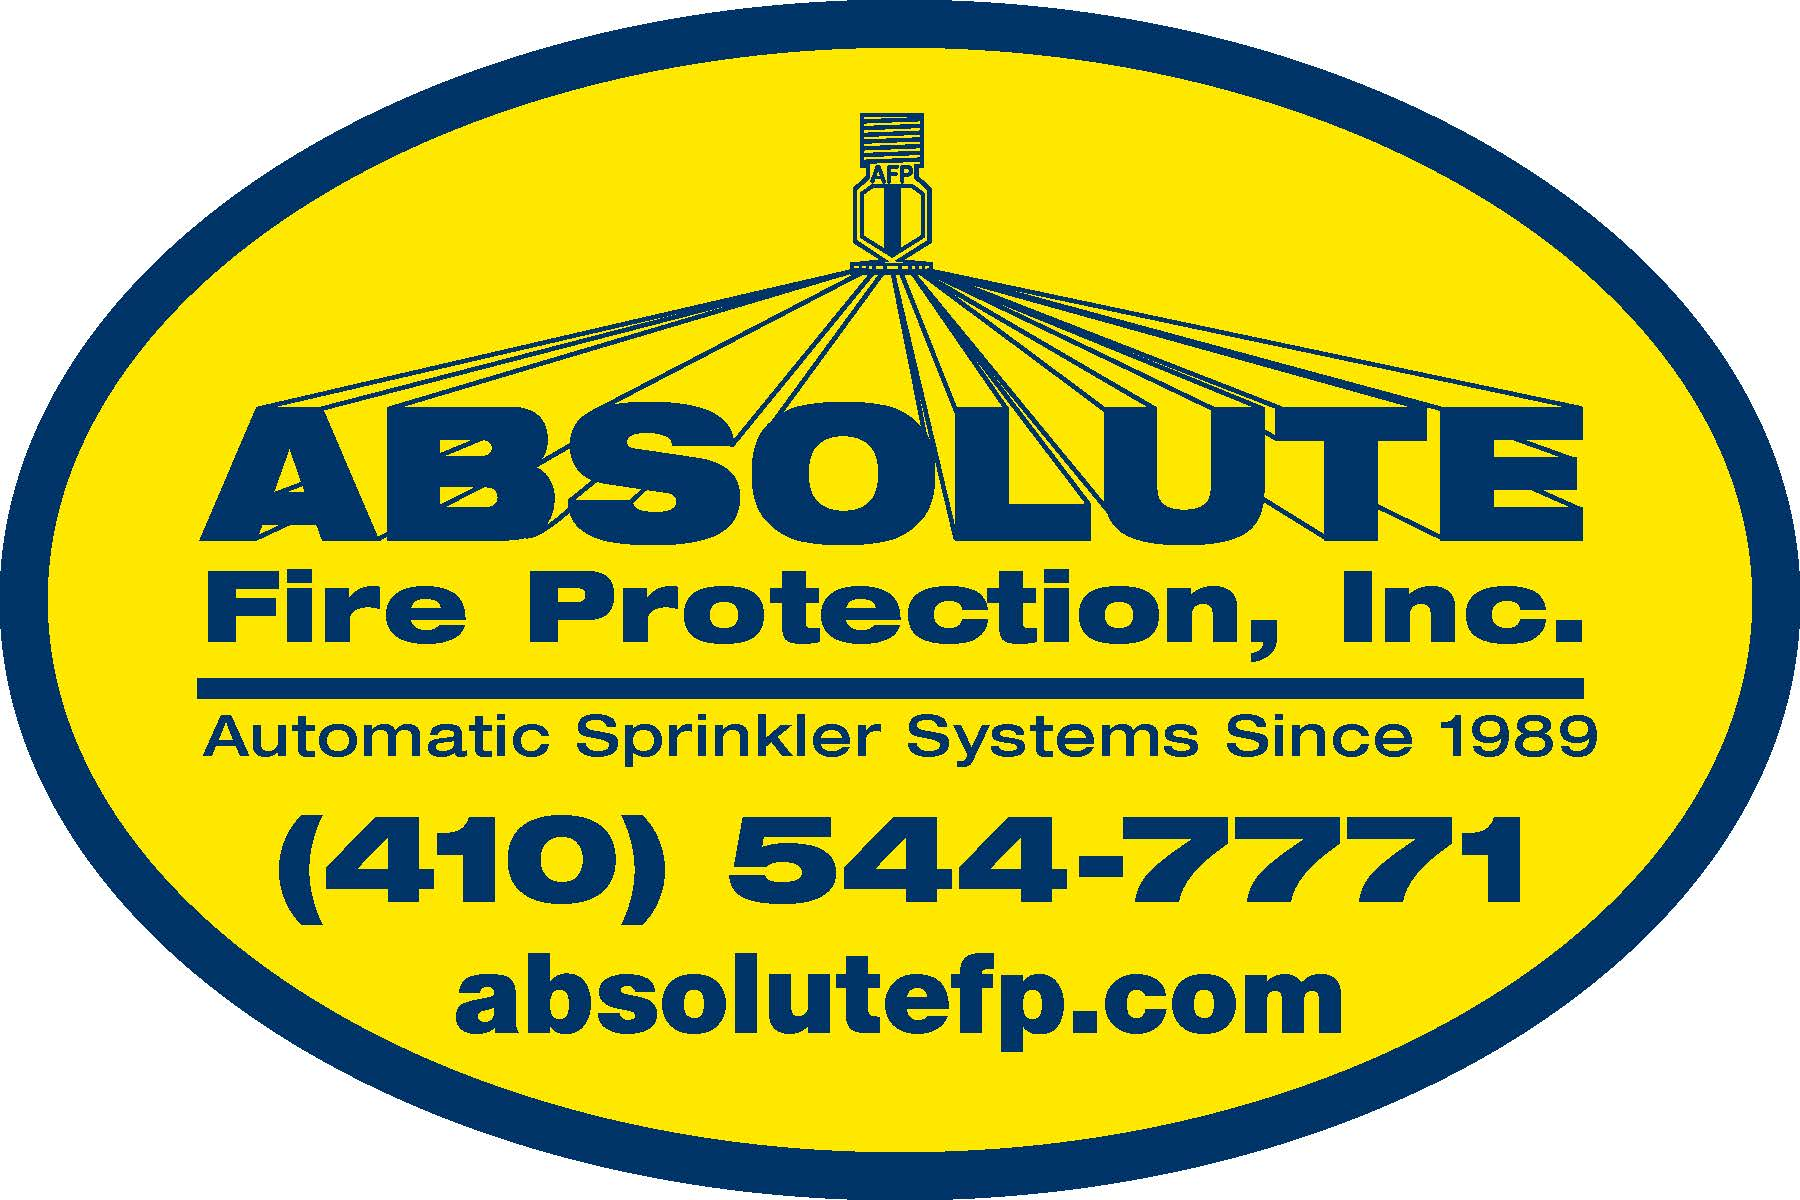 Absolute Fire Protection, Inc.